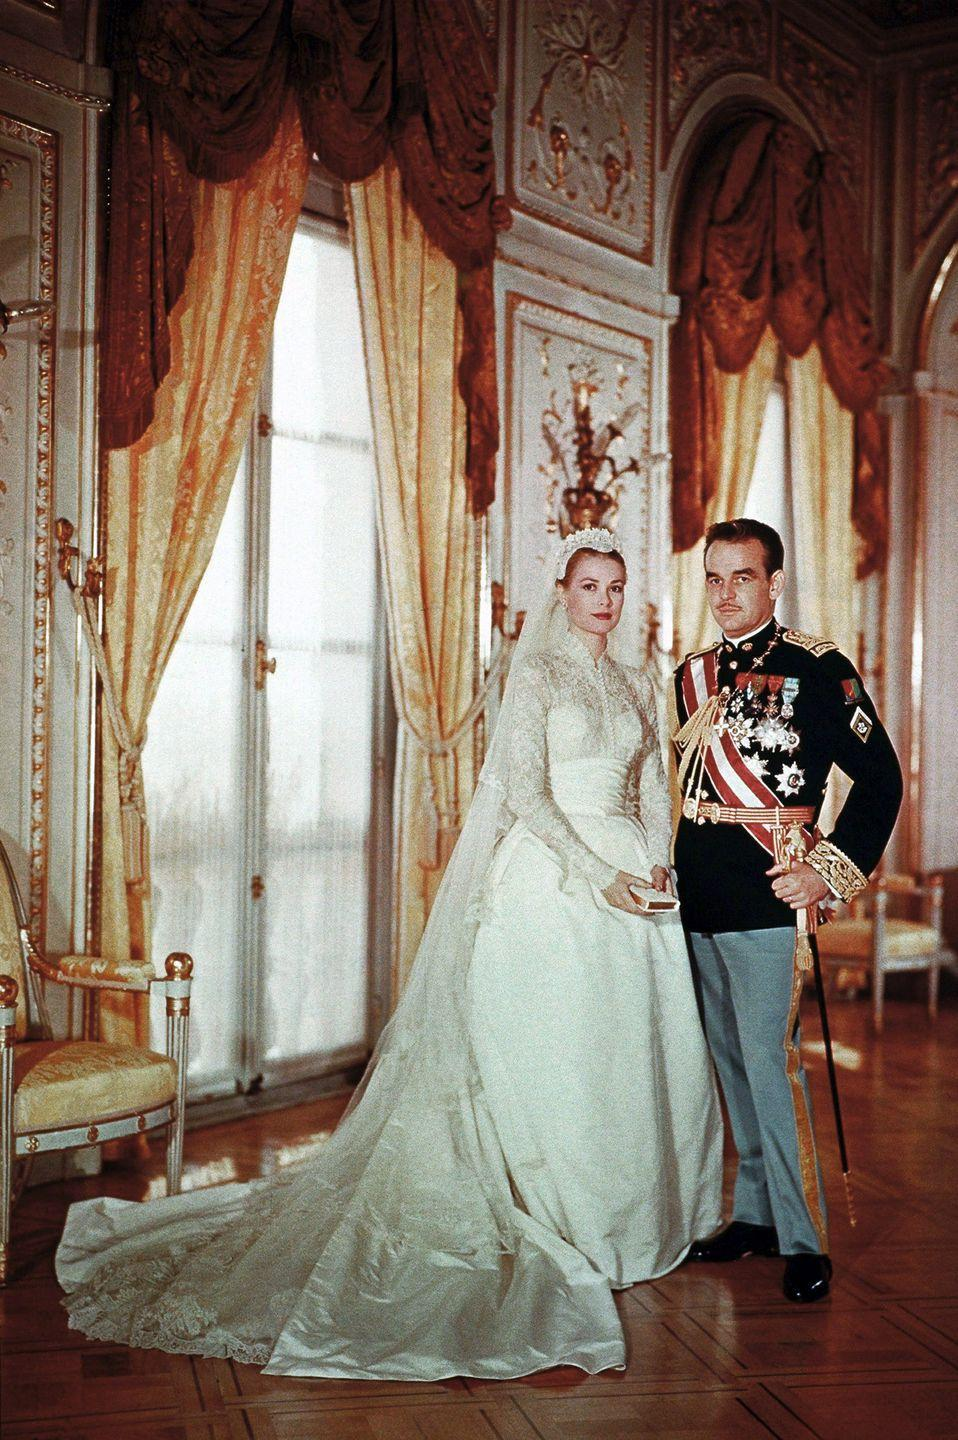 """<p>The actress-turned-royal chose a long-sleeve gown by costume designer <a href=""""https://www.goodhousekeeping.com/beauty/fashion/g4719/grace-kelly-wedding-gown/?slide=1"""" rel=""""nofollow noopener"""" target=""""_blank"""" data-ylk=""""slk:Helen Rose"""" class=""""link rapid-noclick-resp"""">Helen Rose</a>.</p>"""